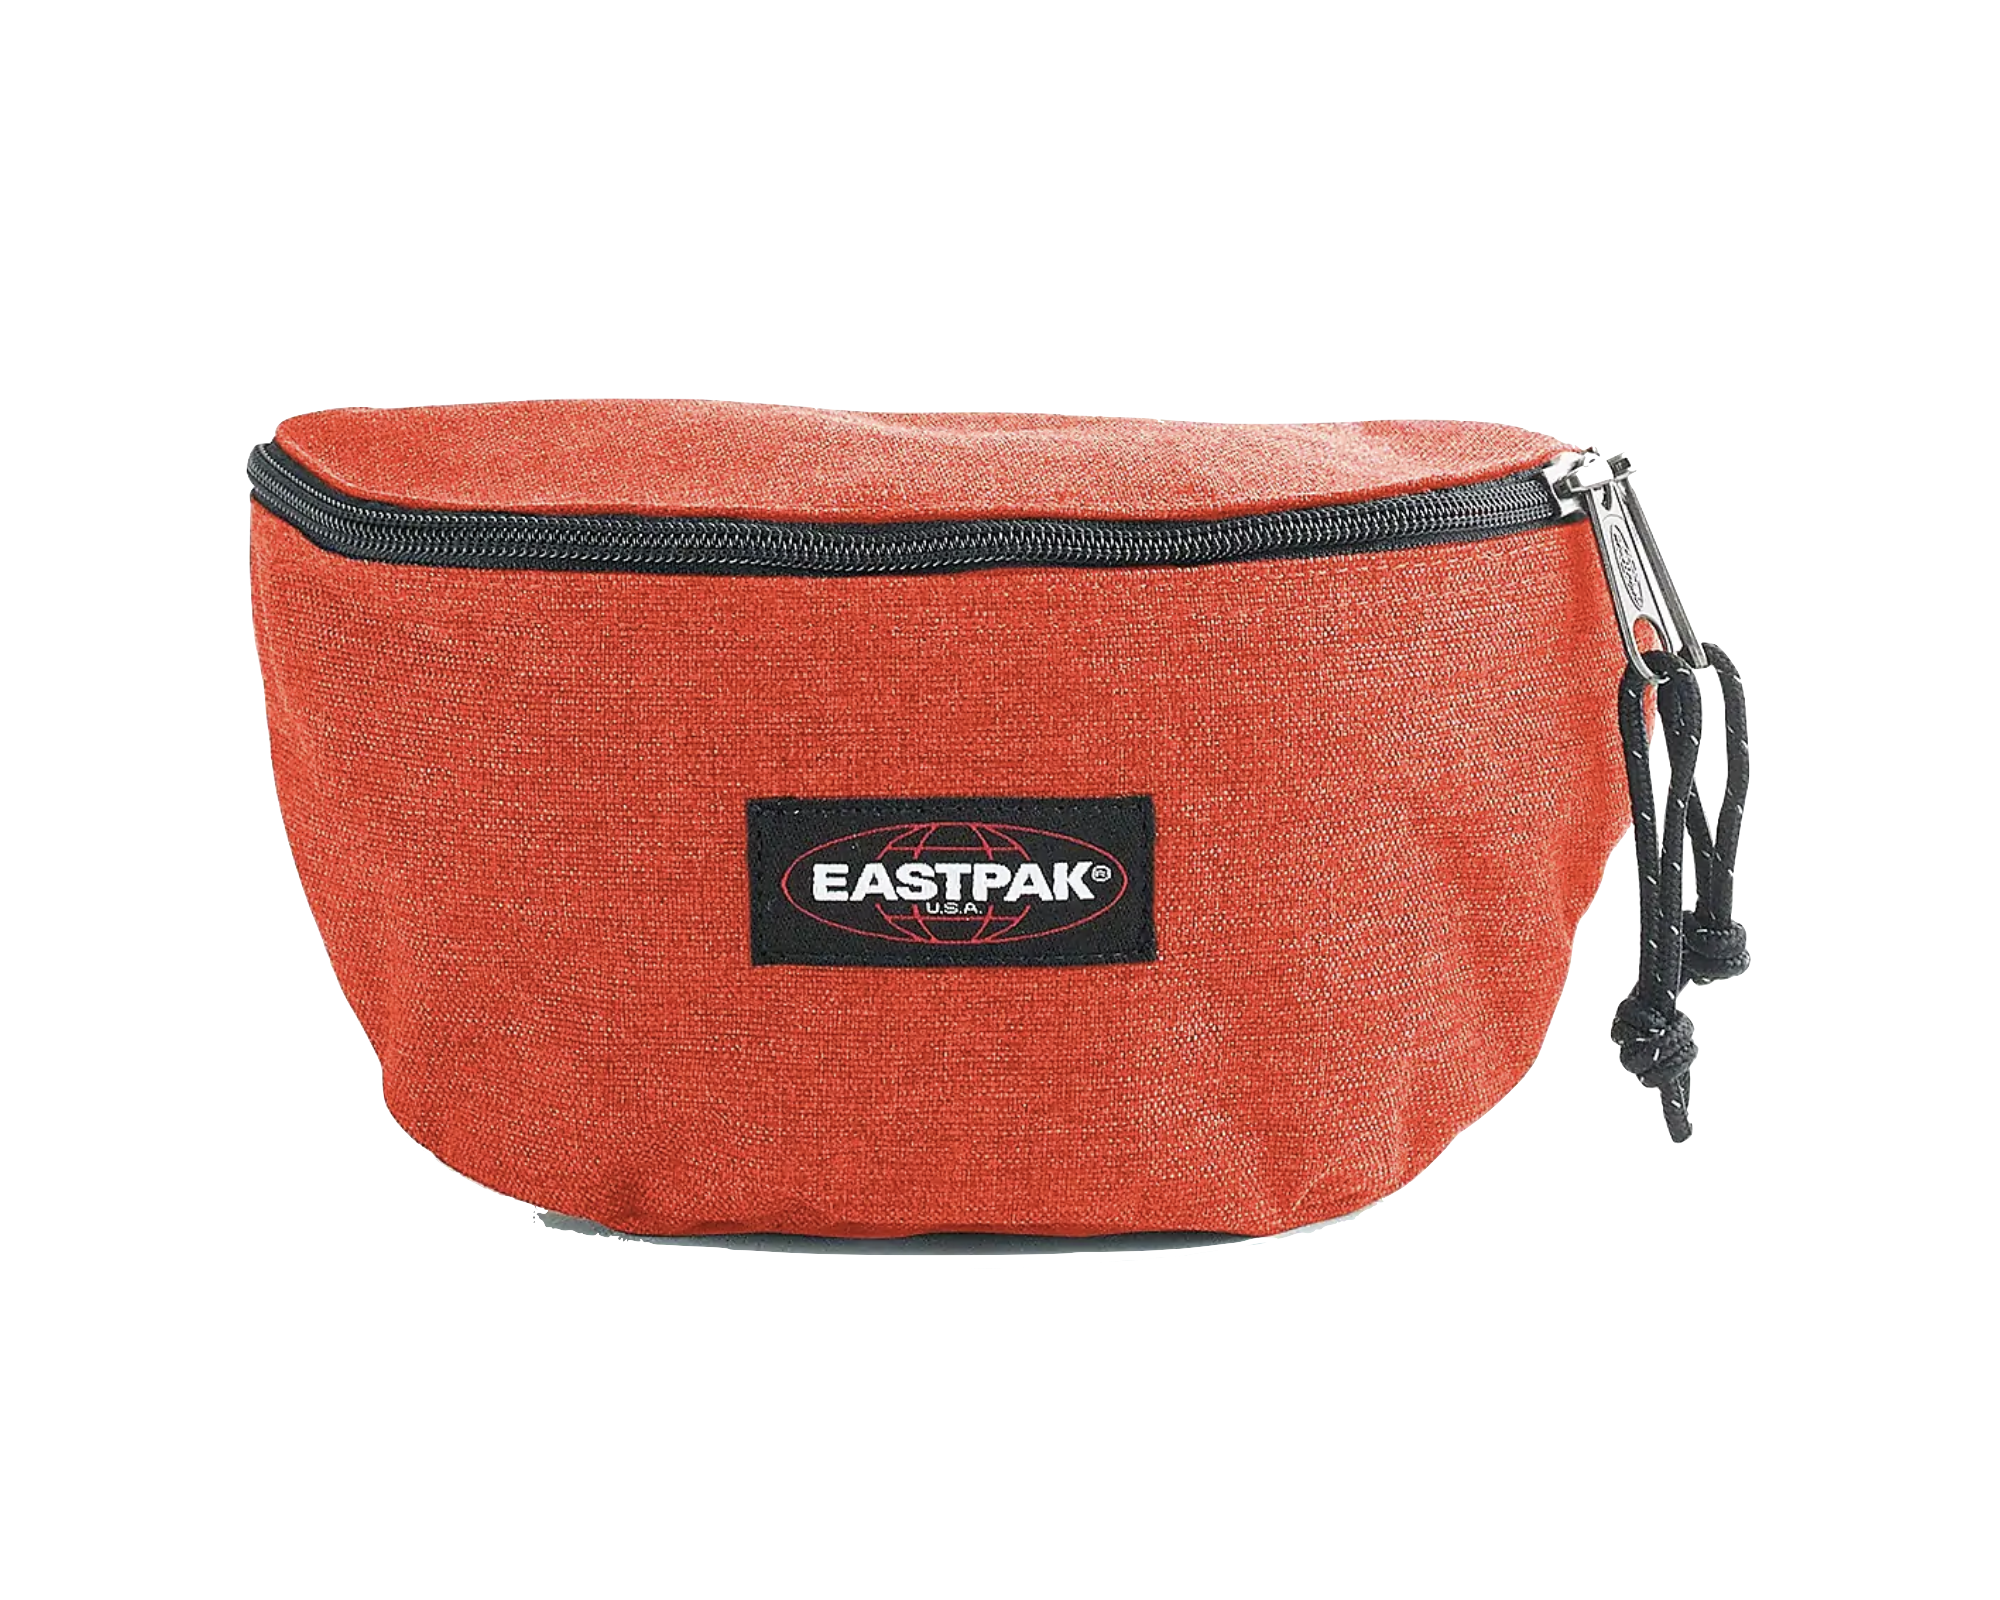 Eastpak Springer fanny pack sold by J Crew